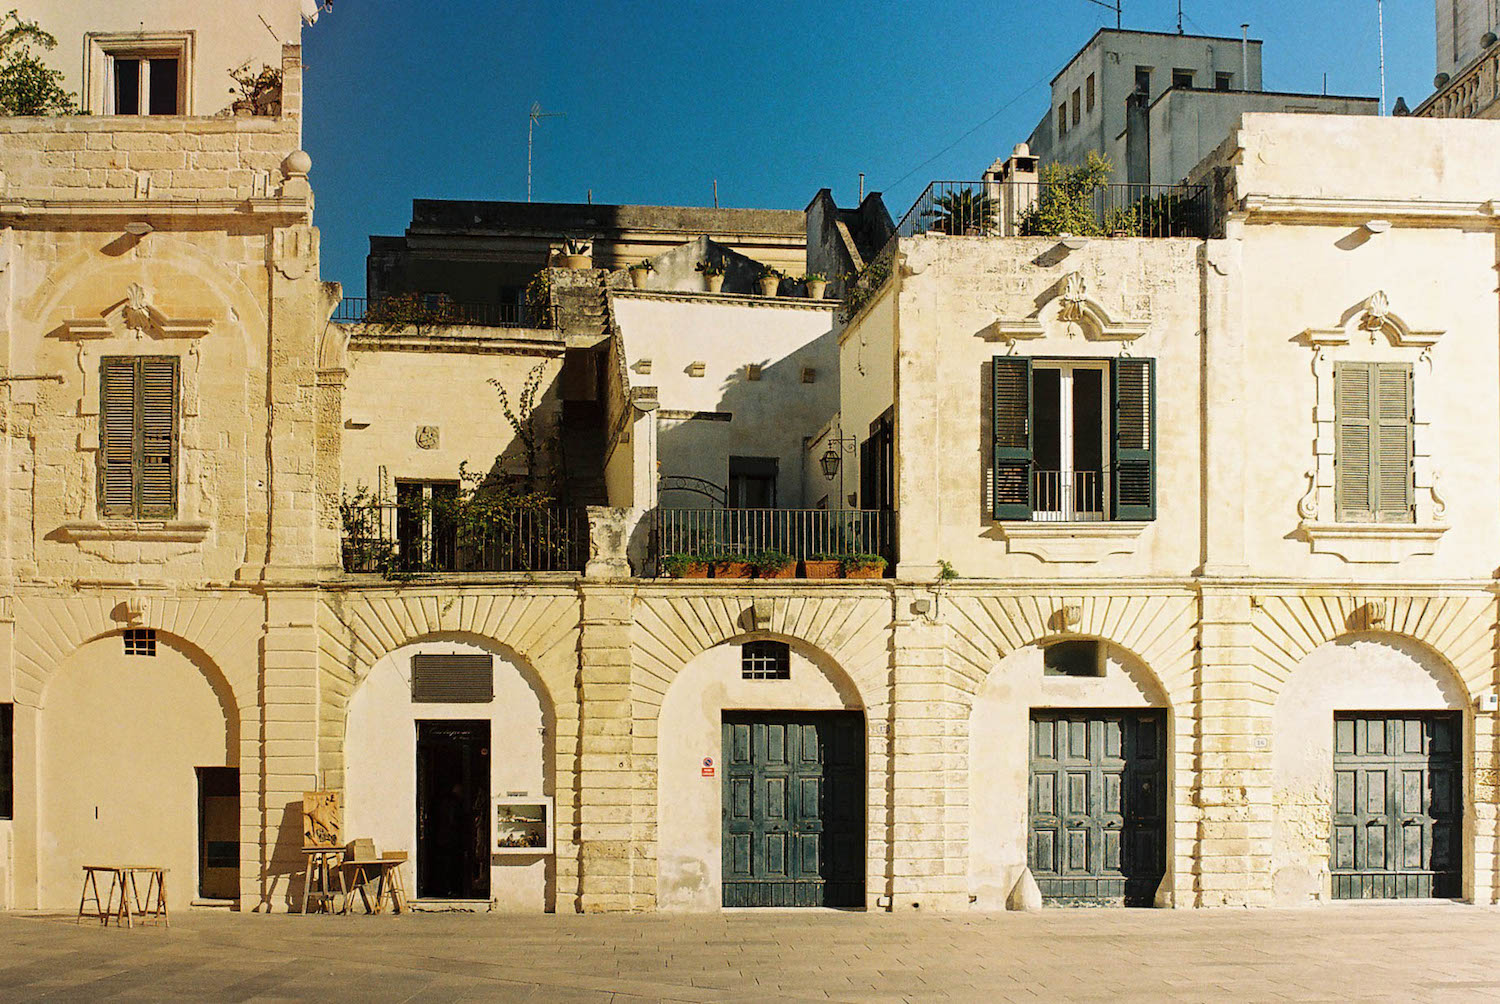 Analogue Travel Photo of a building facade in Lecco, Puglia